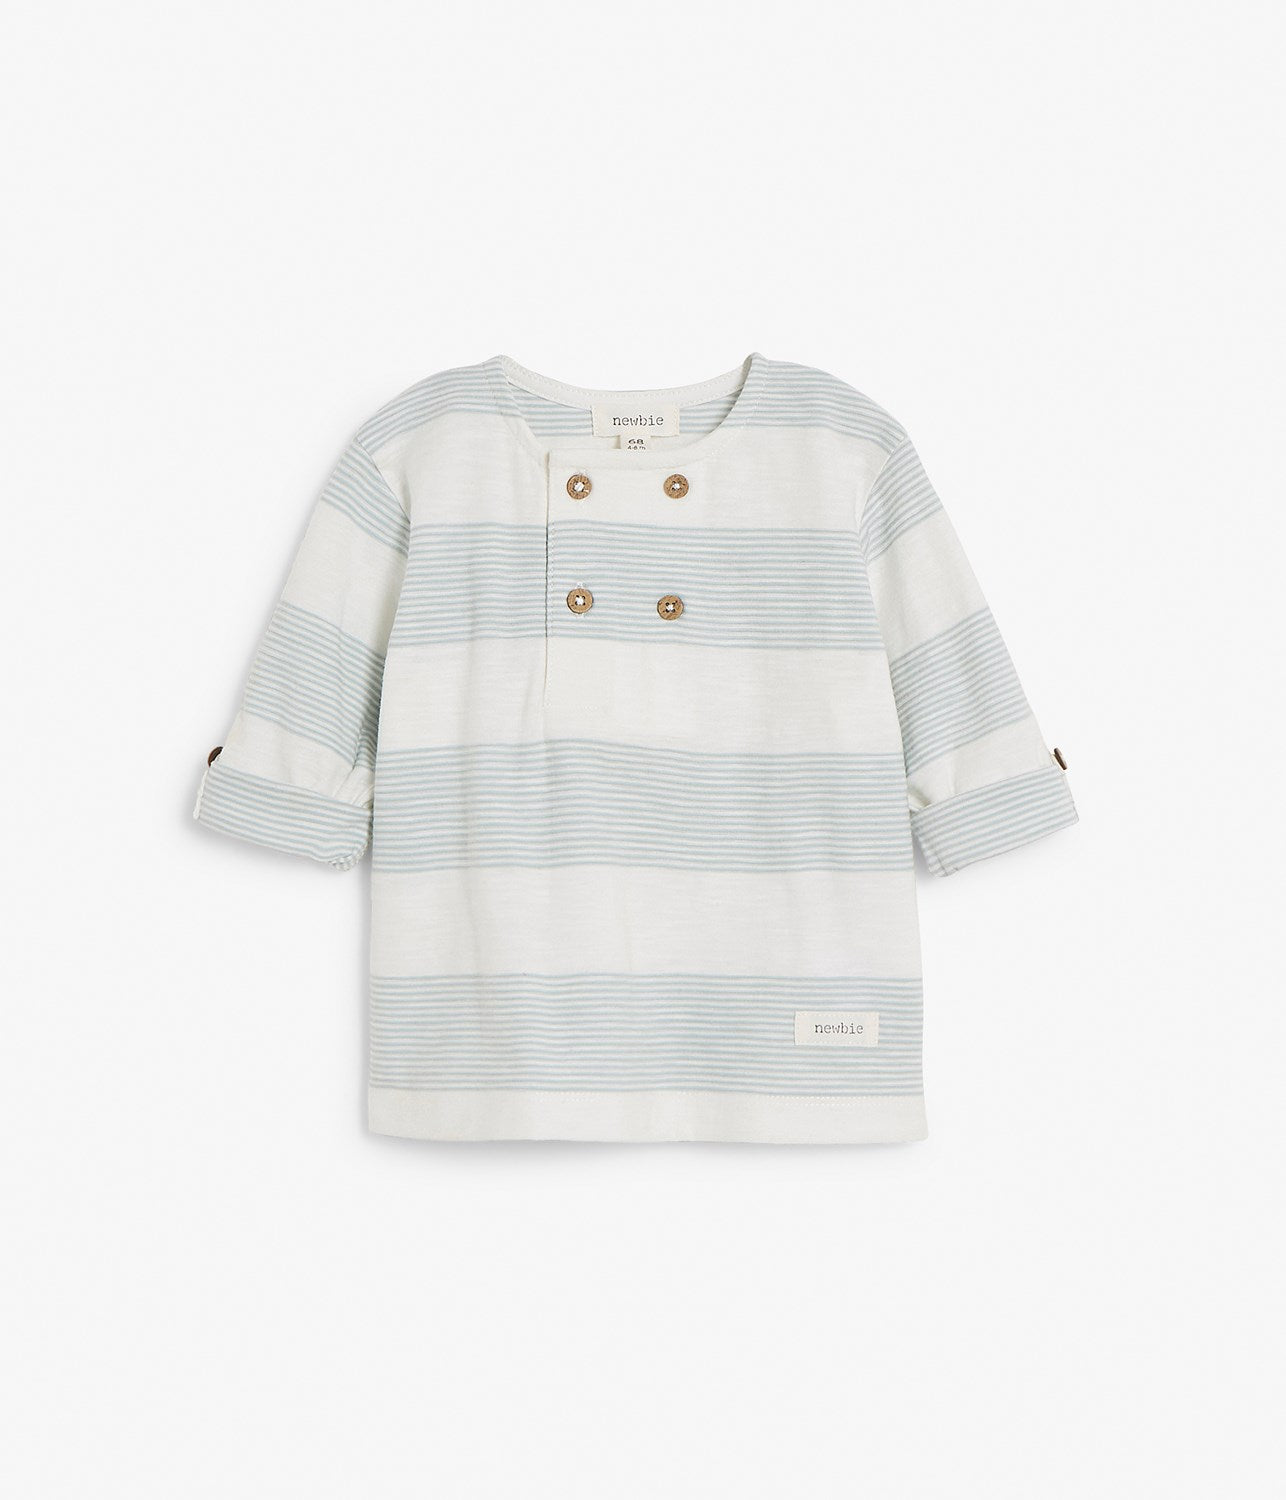 Baby turquoise striped t-shirt